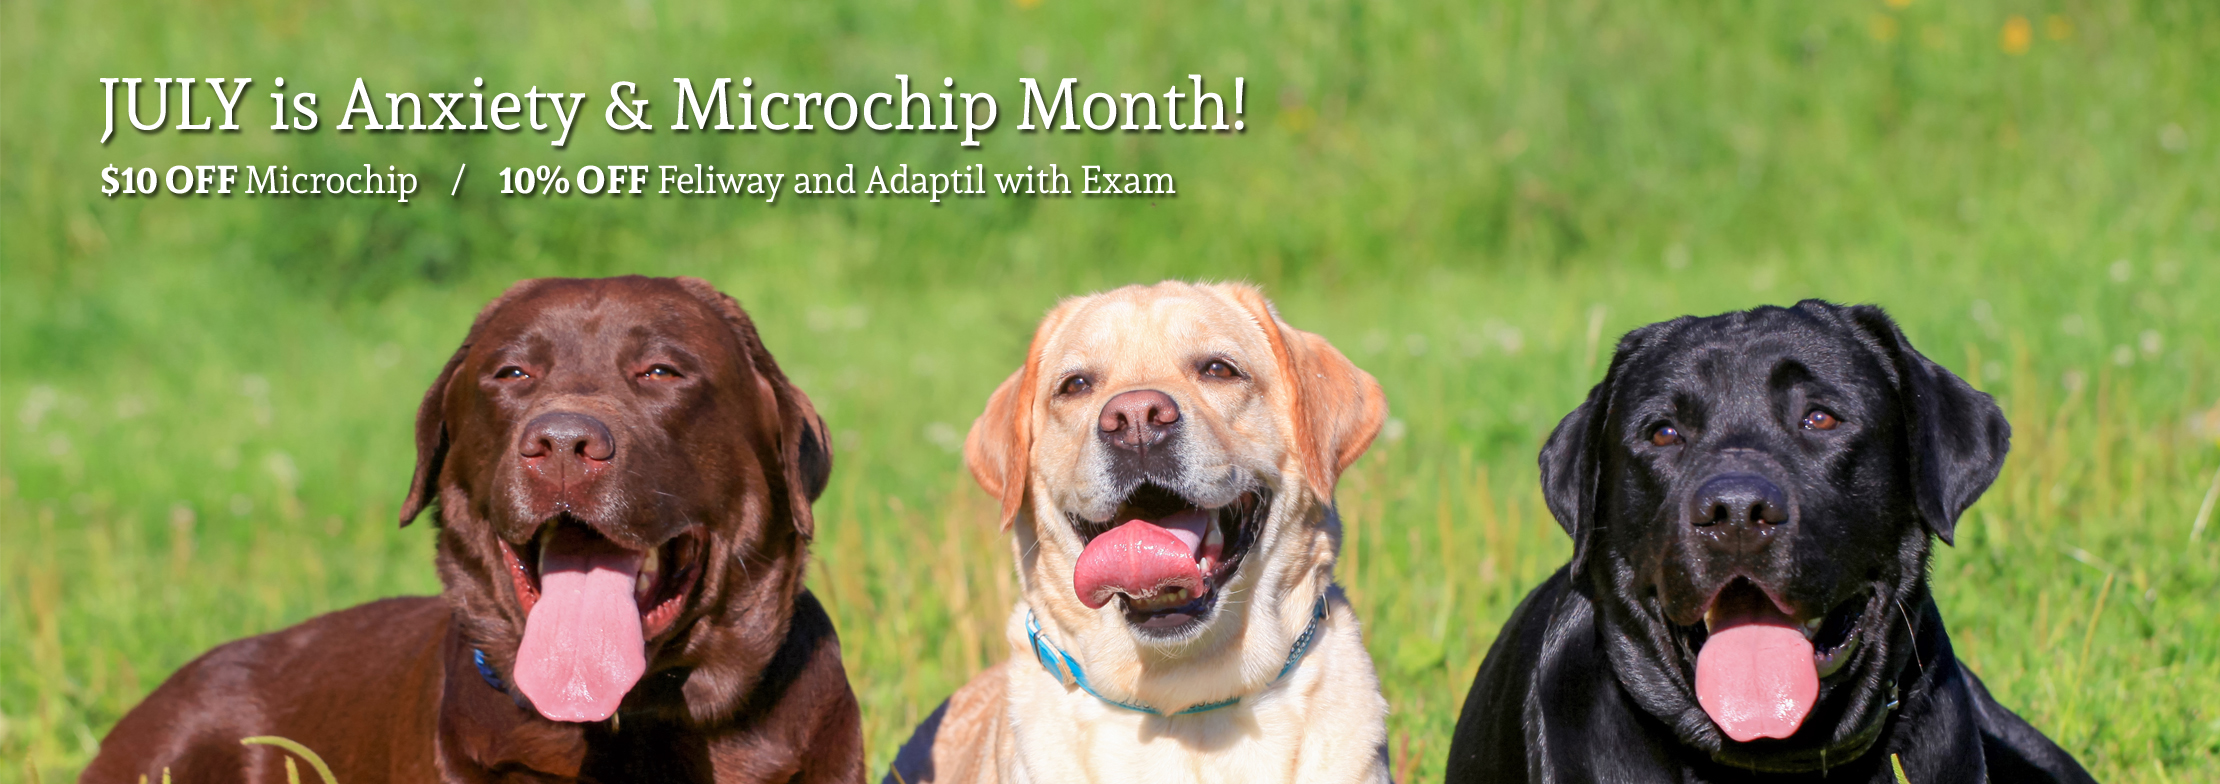 bayview_AH_July is Anxiety & Microchip Month_slider